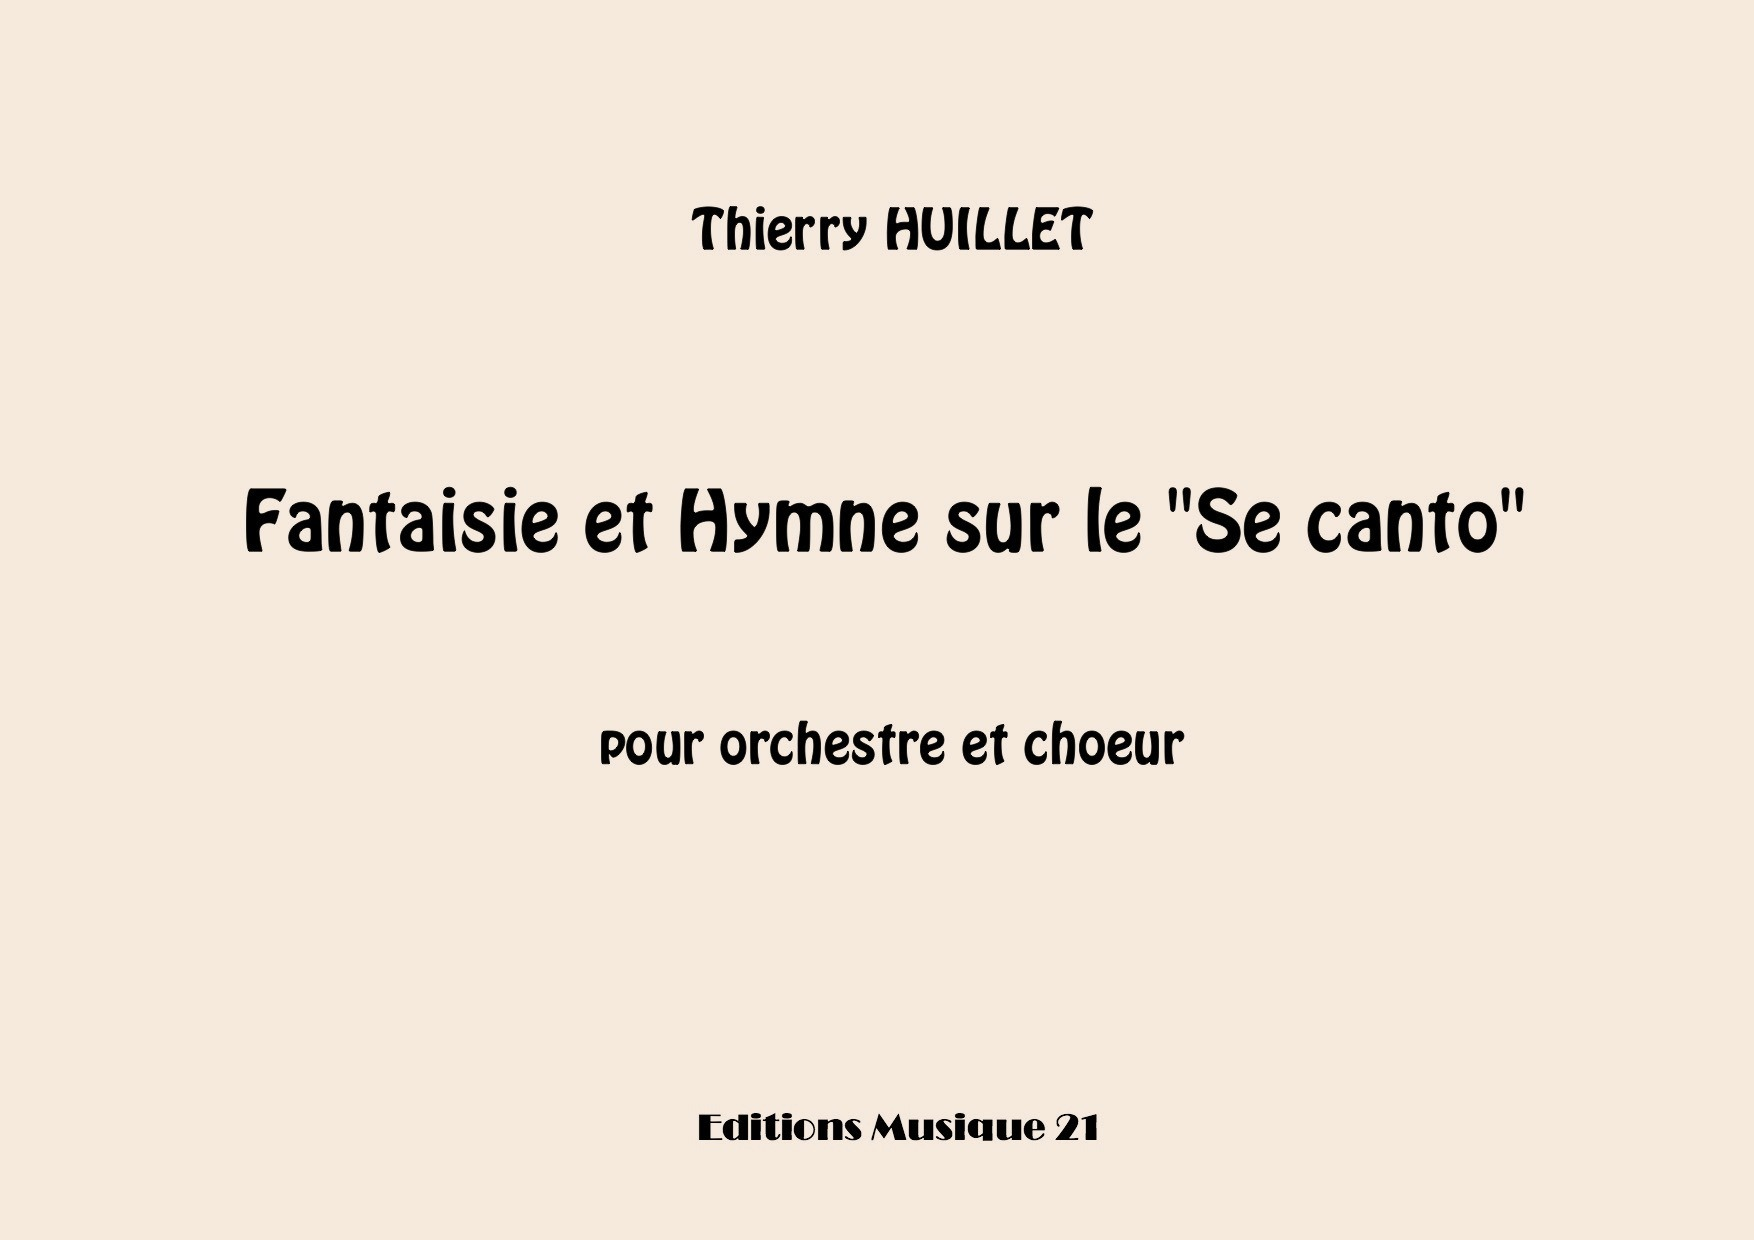 Thierry HUILLET – Fantaisie Et Hymne Sur Le Se Canto, For Orchestra And Choir